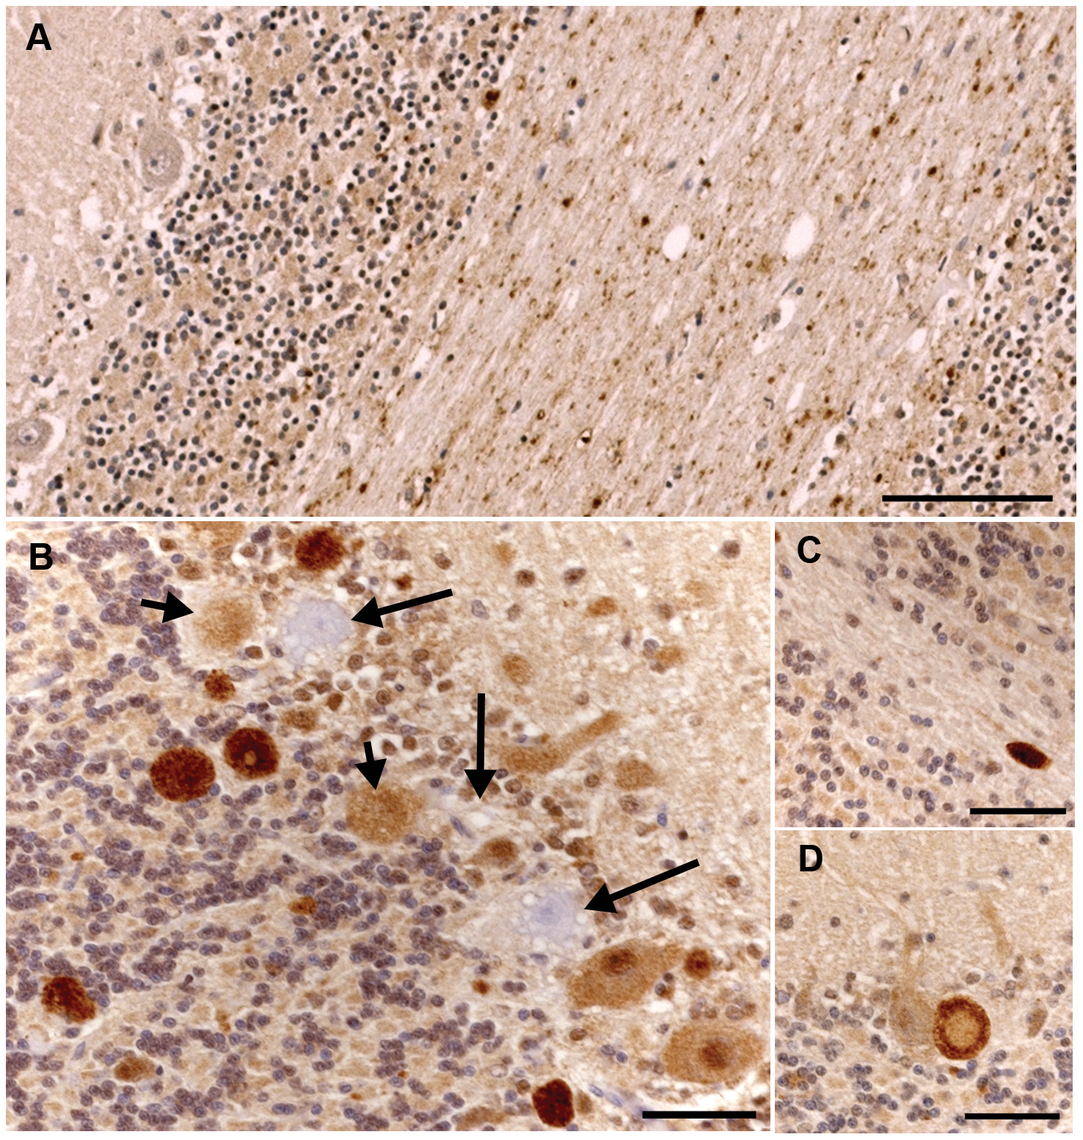 Ubiquitin immunohistochemical staining of the cerebellum of an unaffected 11-year-old Dachshund and an affected 2.5-year-old Gordon Setter.